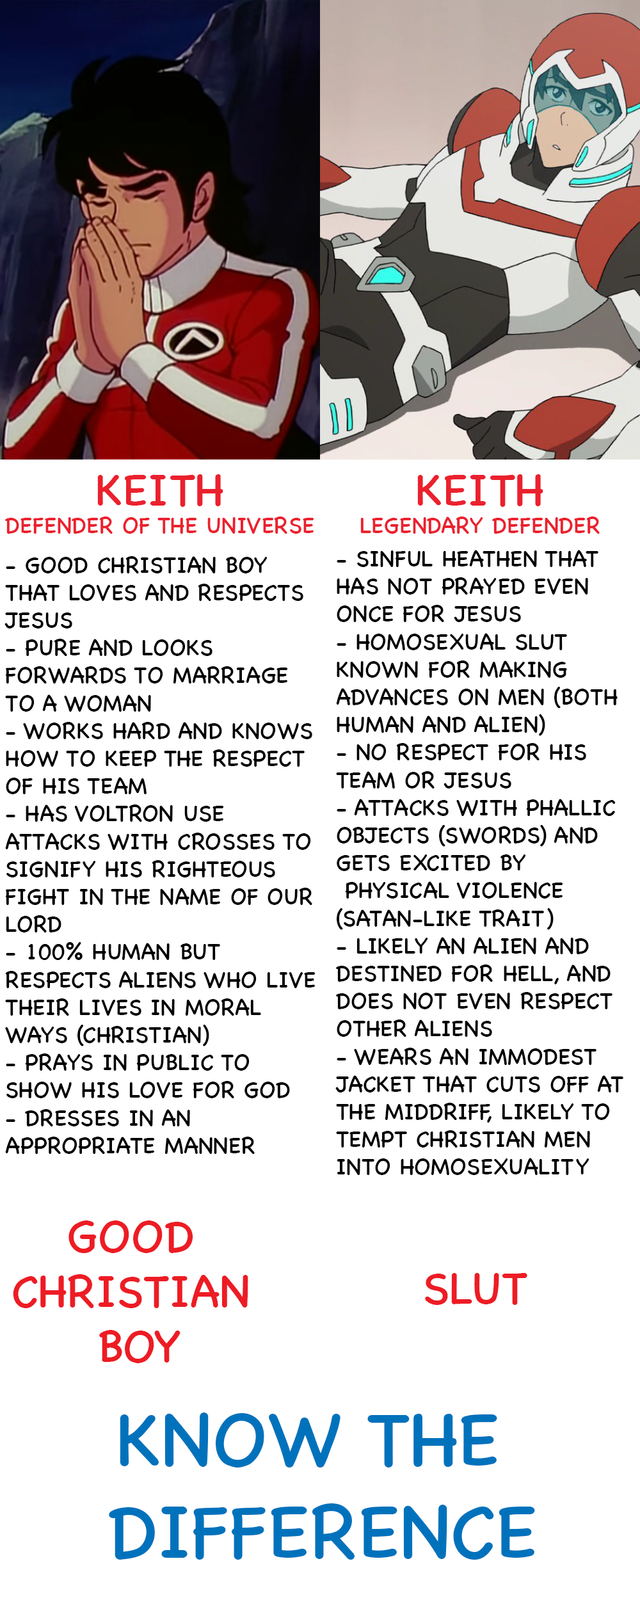 I like slut Keith better. Why does this exist.